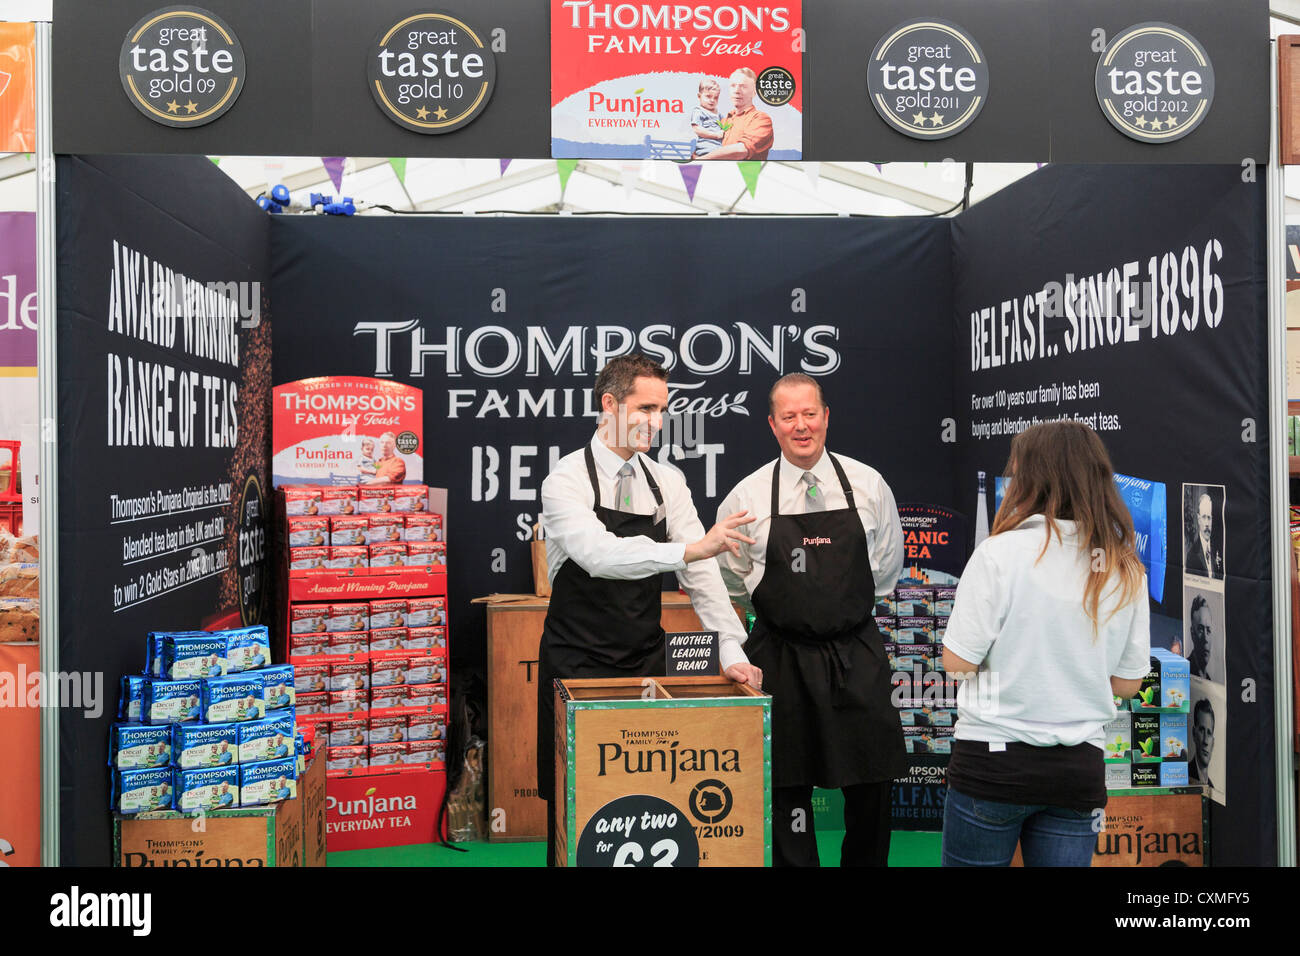 Stall selling Thompson's Family Teas at the food festival in Belfast, Co Antrim, Northern Ireland, UK. - Stock Image